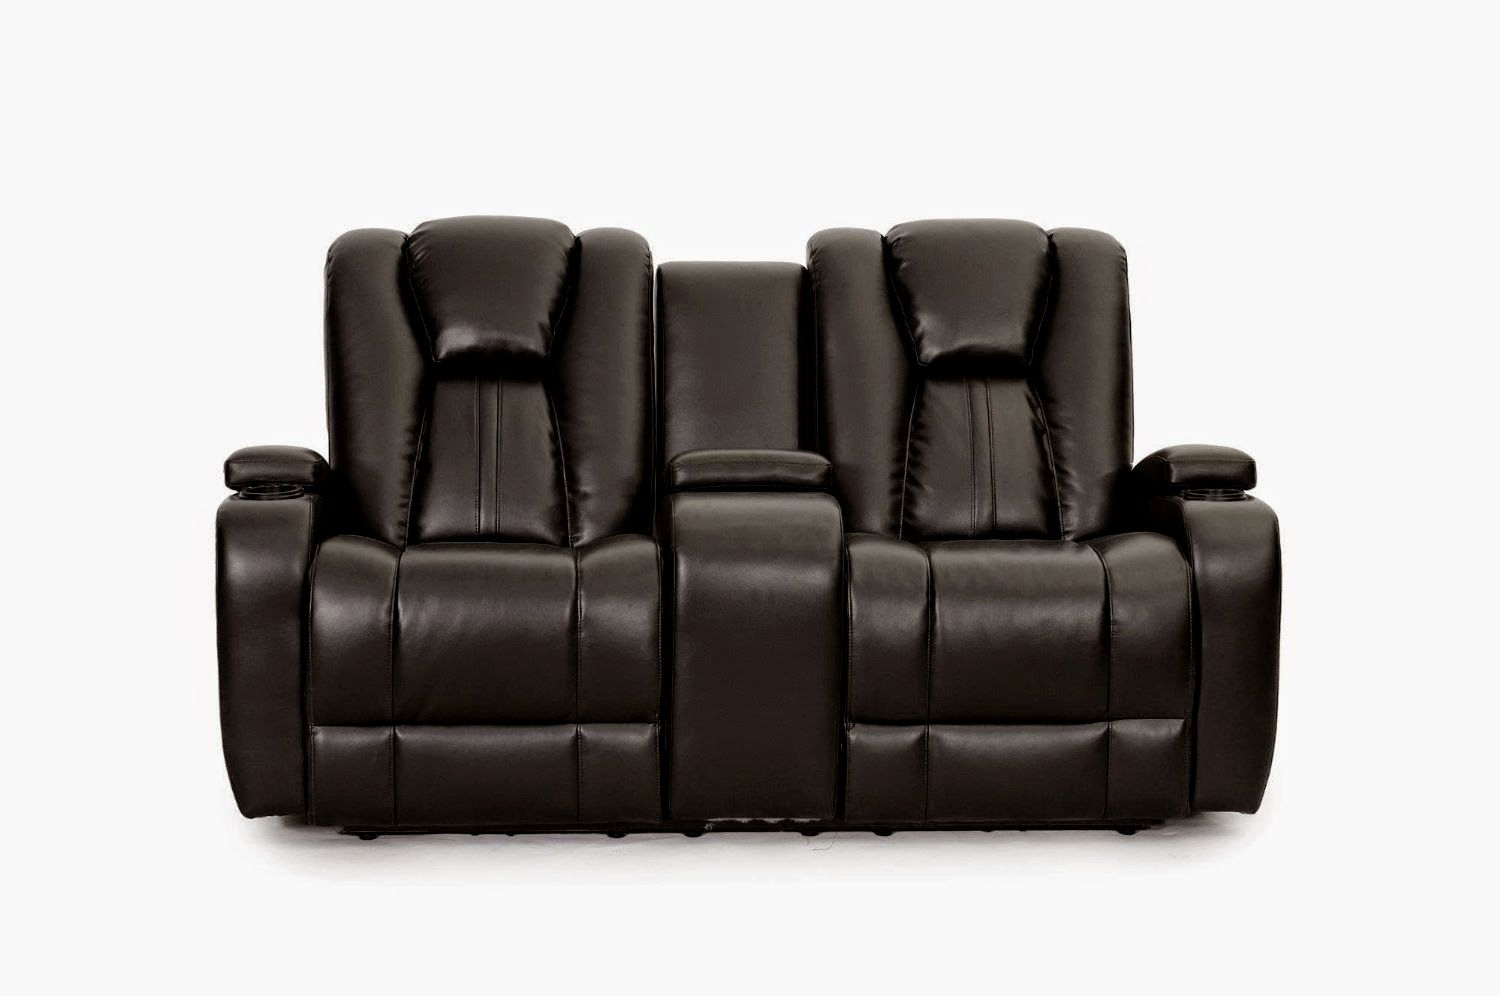 best of costco leather reclining sofa ideas-Elegant Costco Leather Reclining sofa Gallery